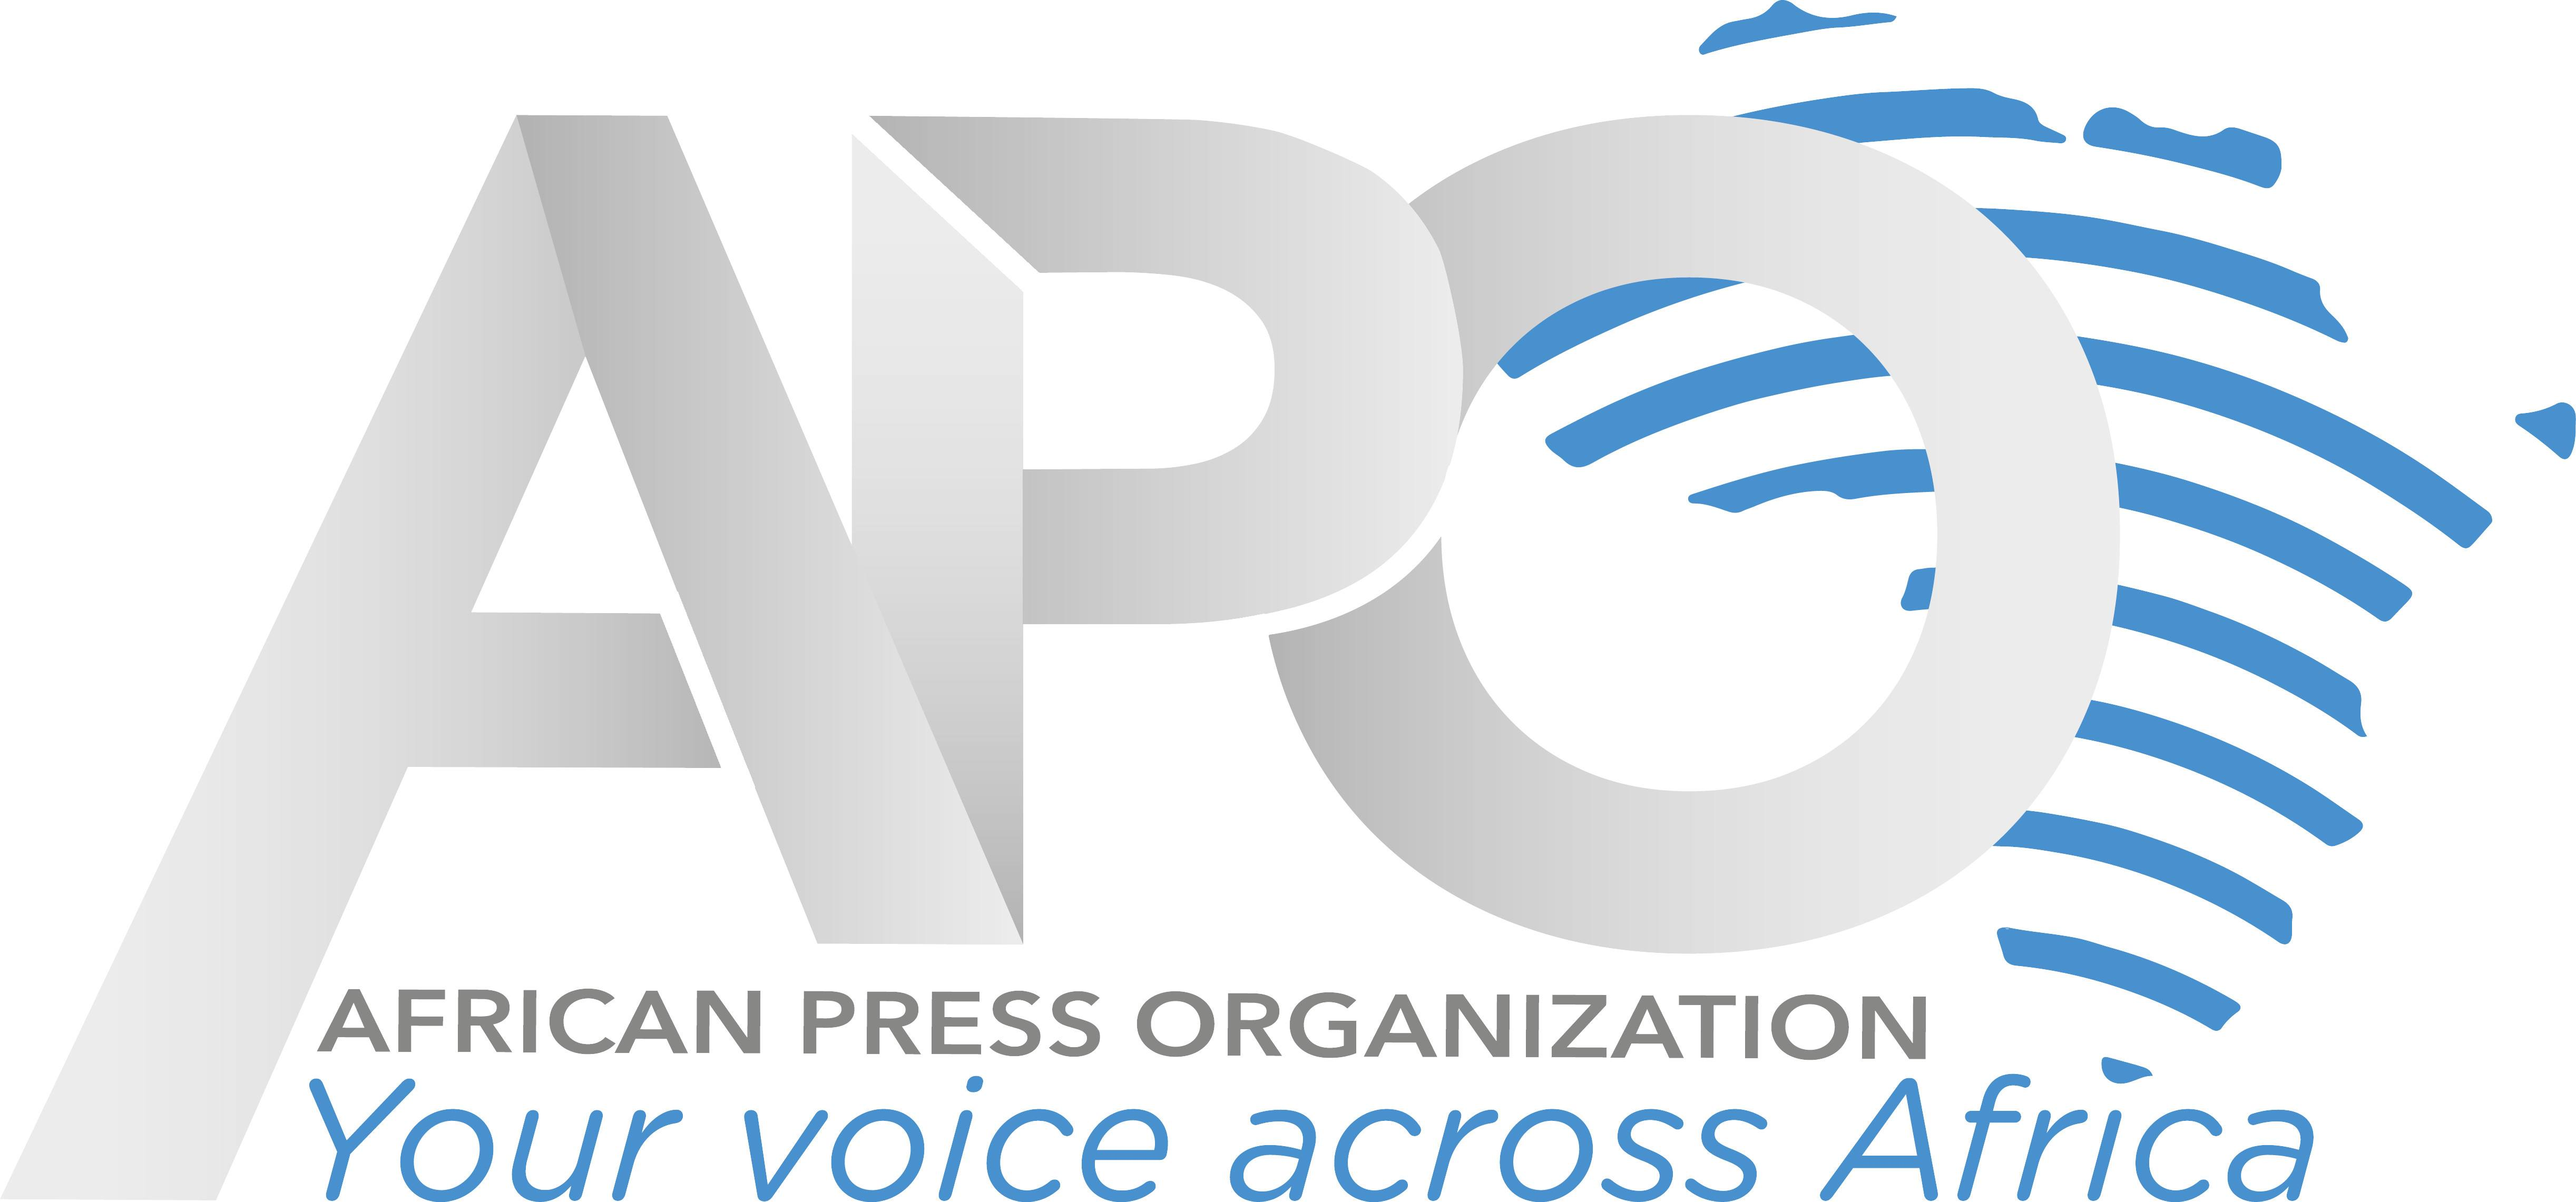 APO (African Press Organization) logo